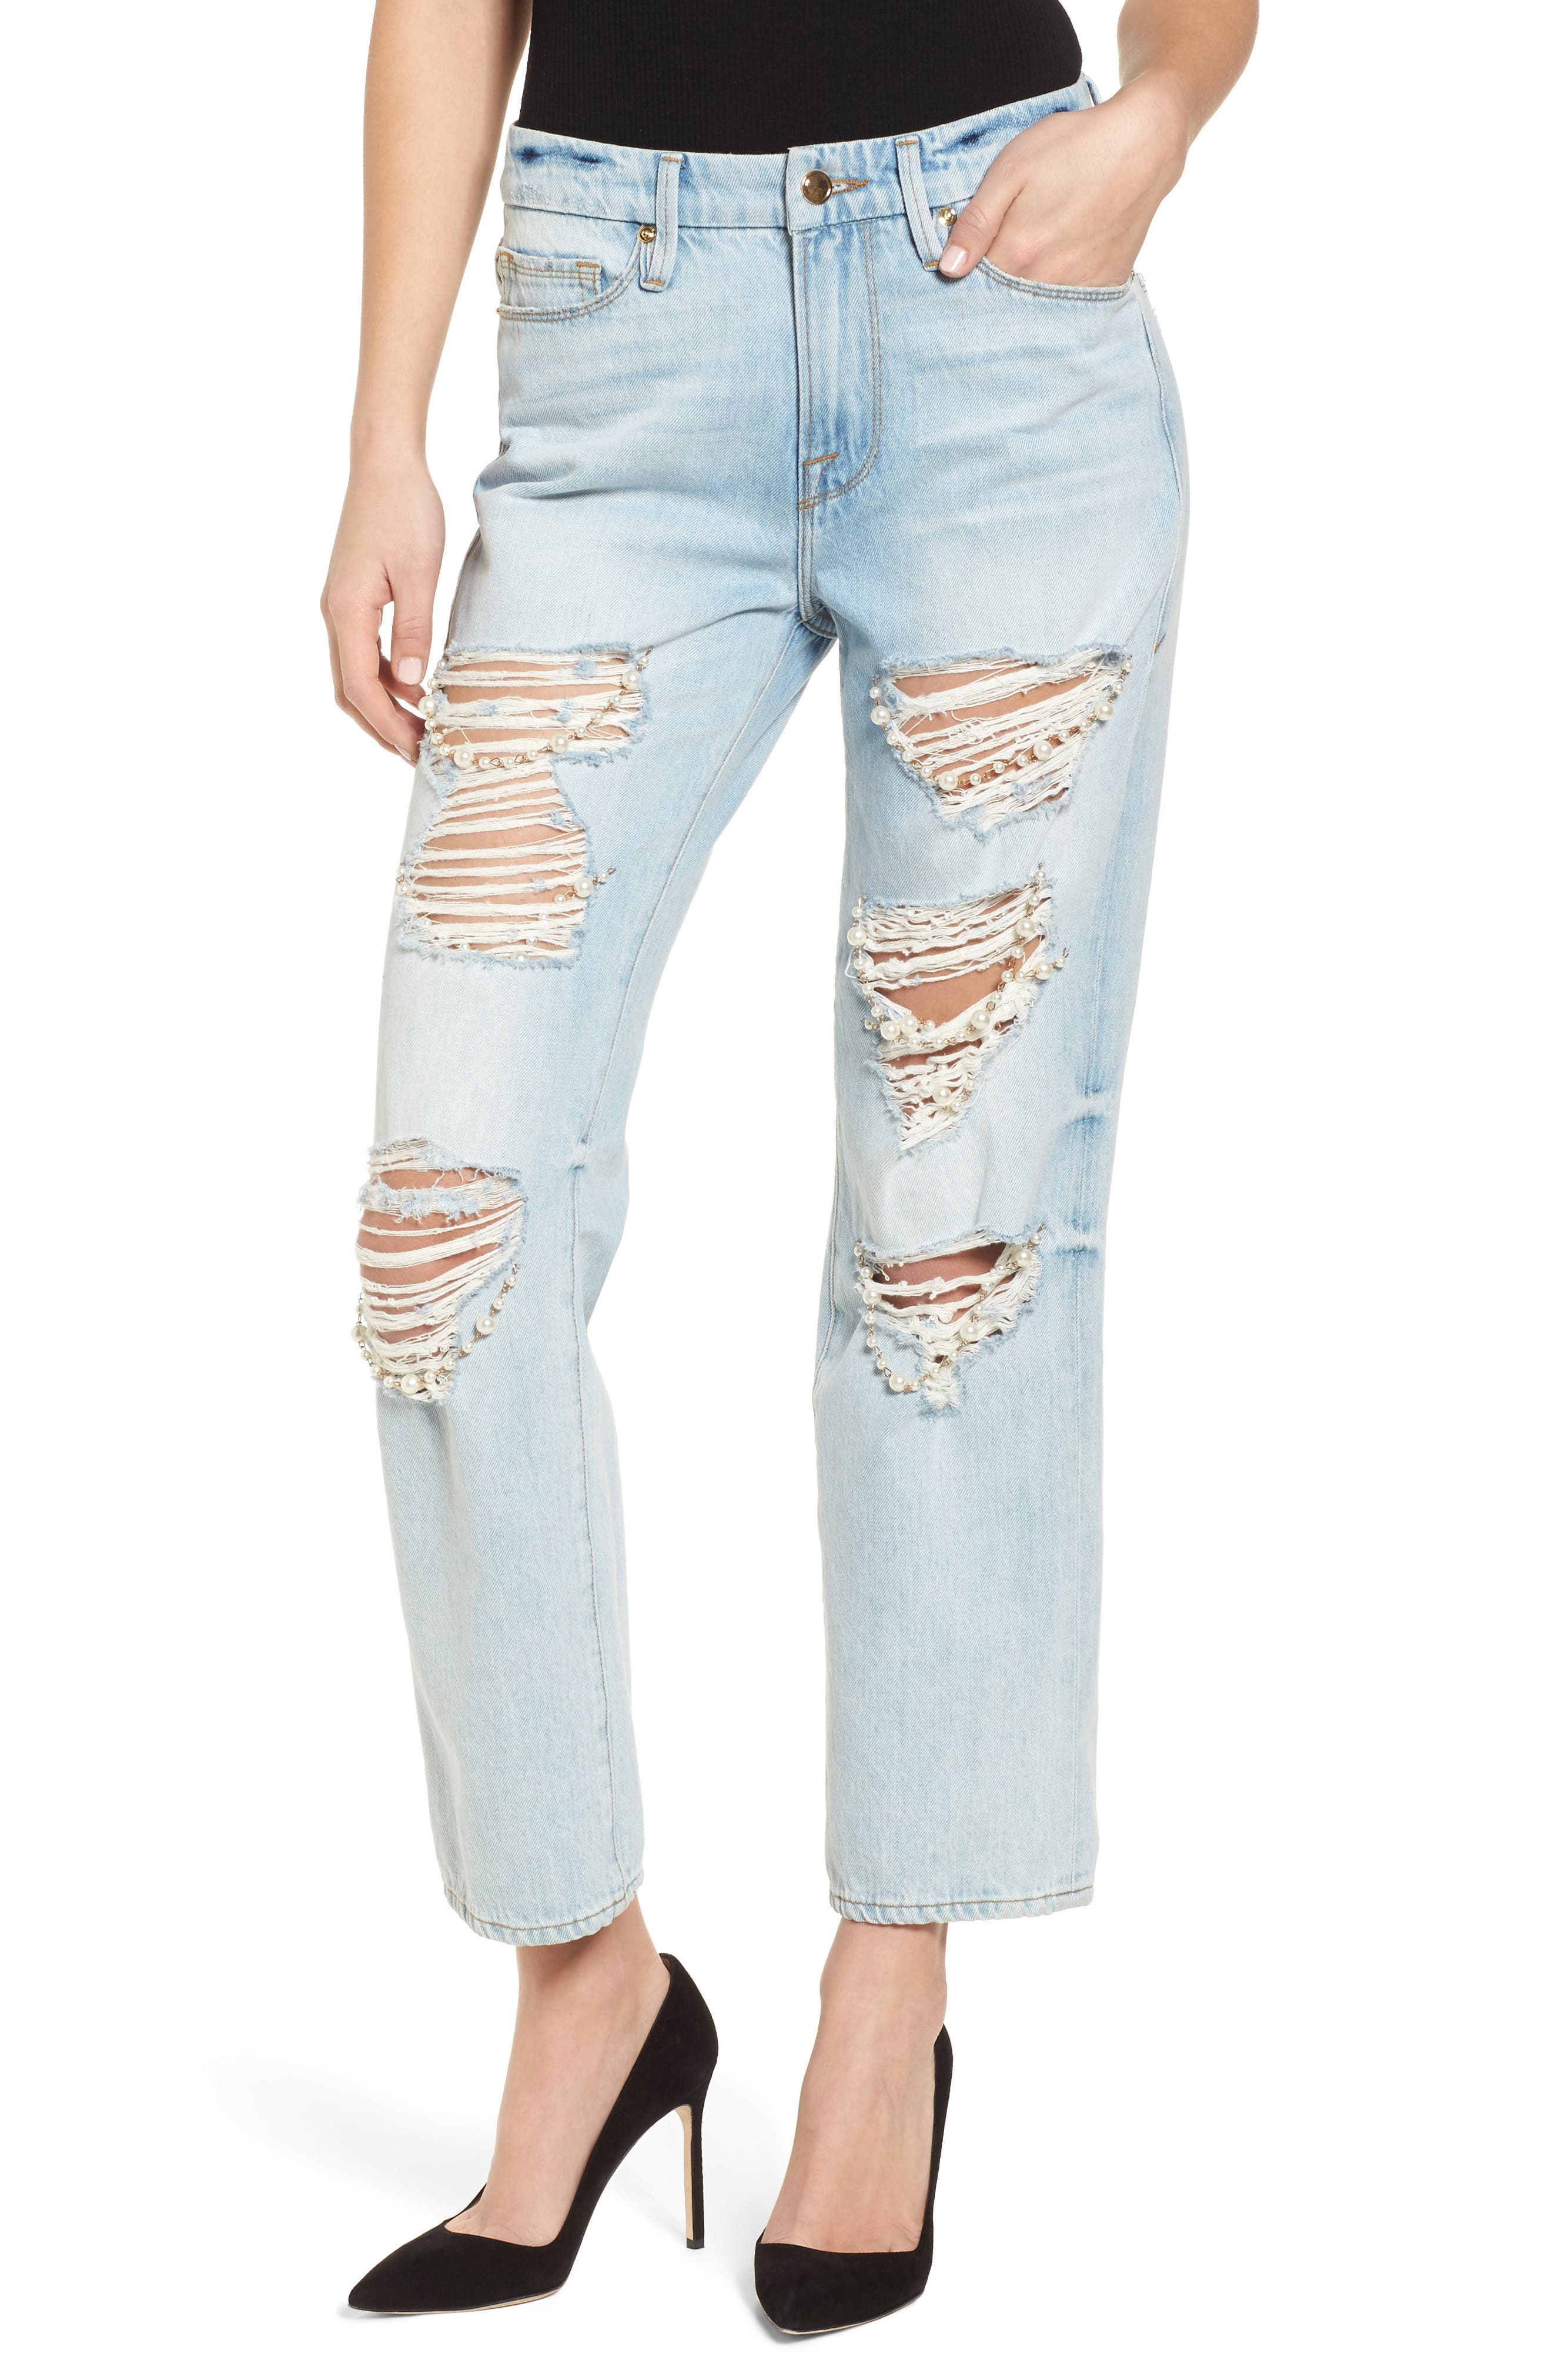 Good Straight Pearls High Waist Jeans,                             Main thumbnail 1, color,                             Blue143